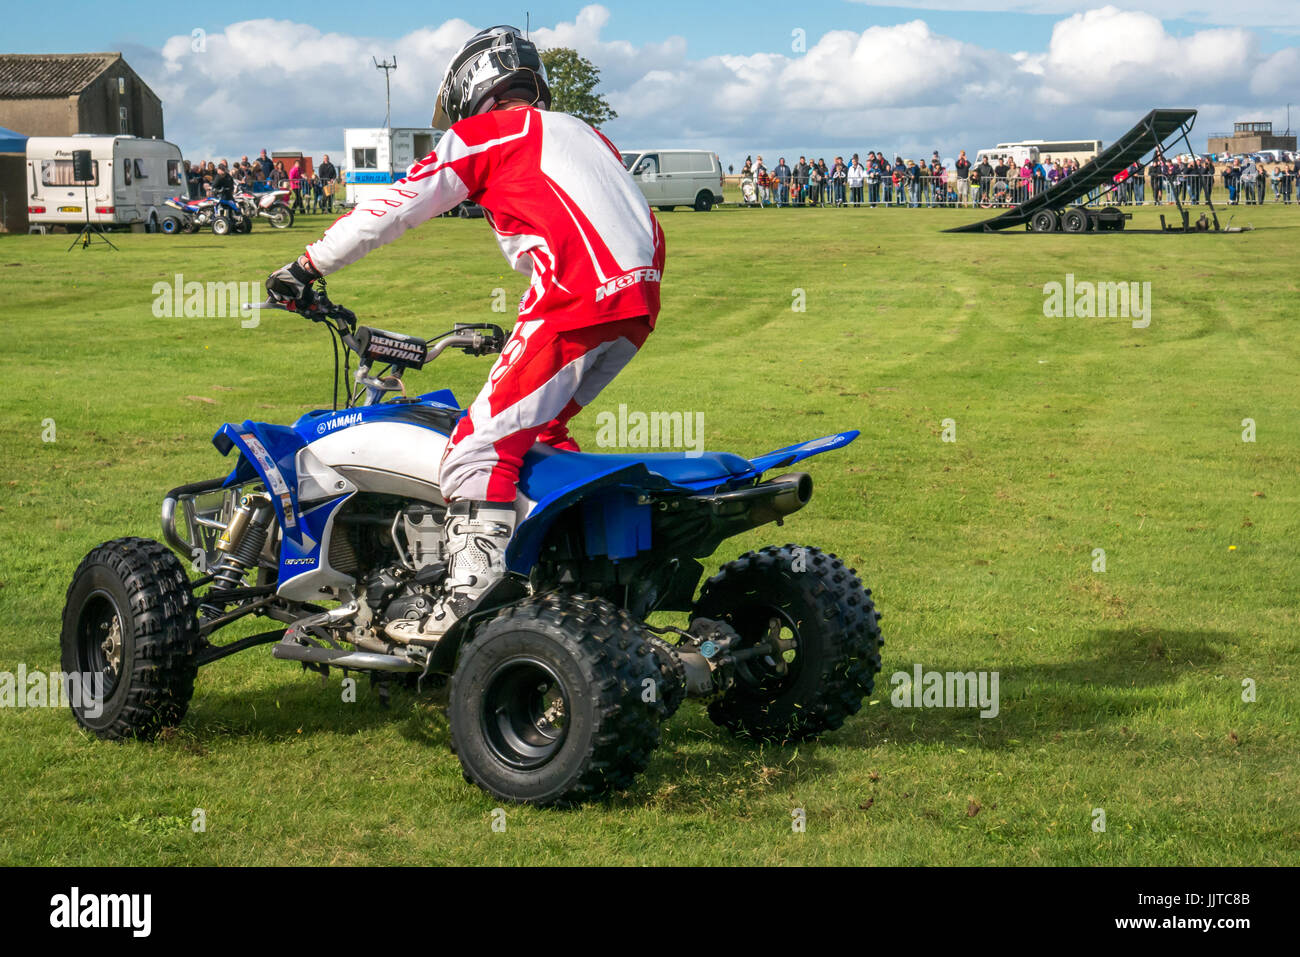 Jason Smyth stuntman performing quad bike stunt at Wheels and Wings family event 2016, East Fortune, East Lothian, Stock Photo